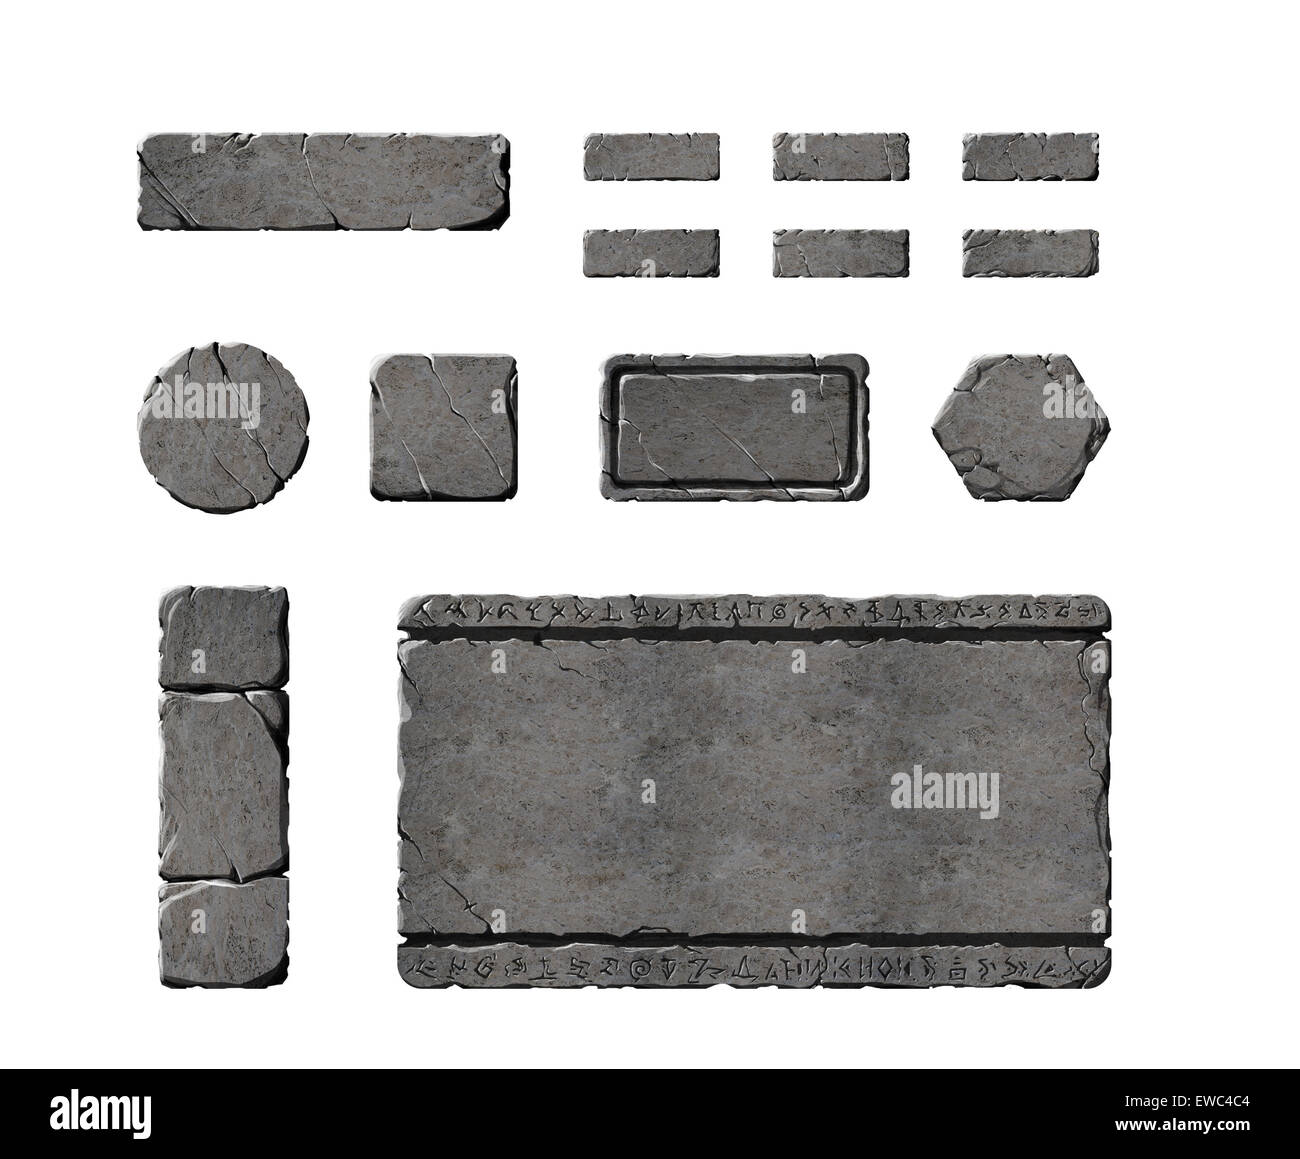 A set of stone buttons and panels - Stock Image